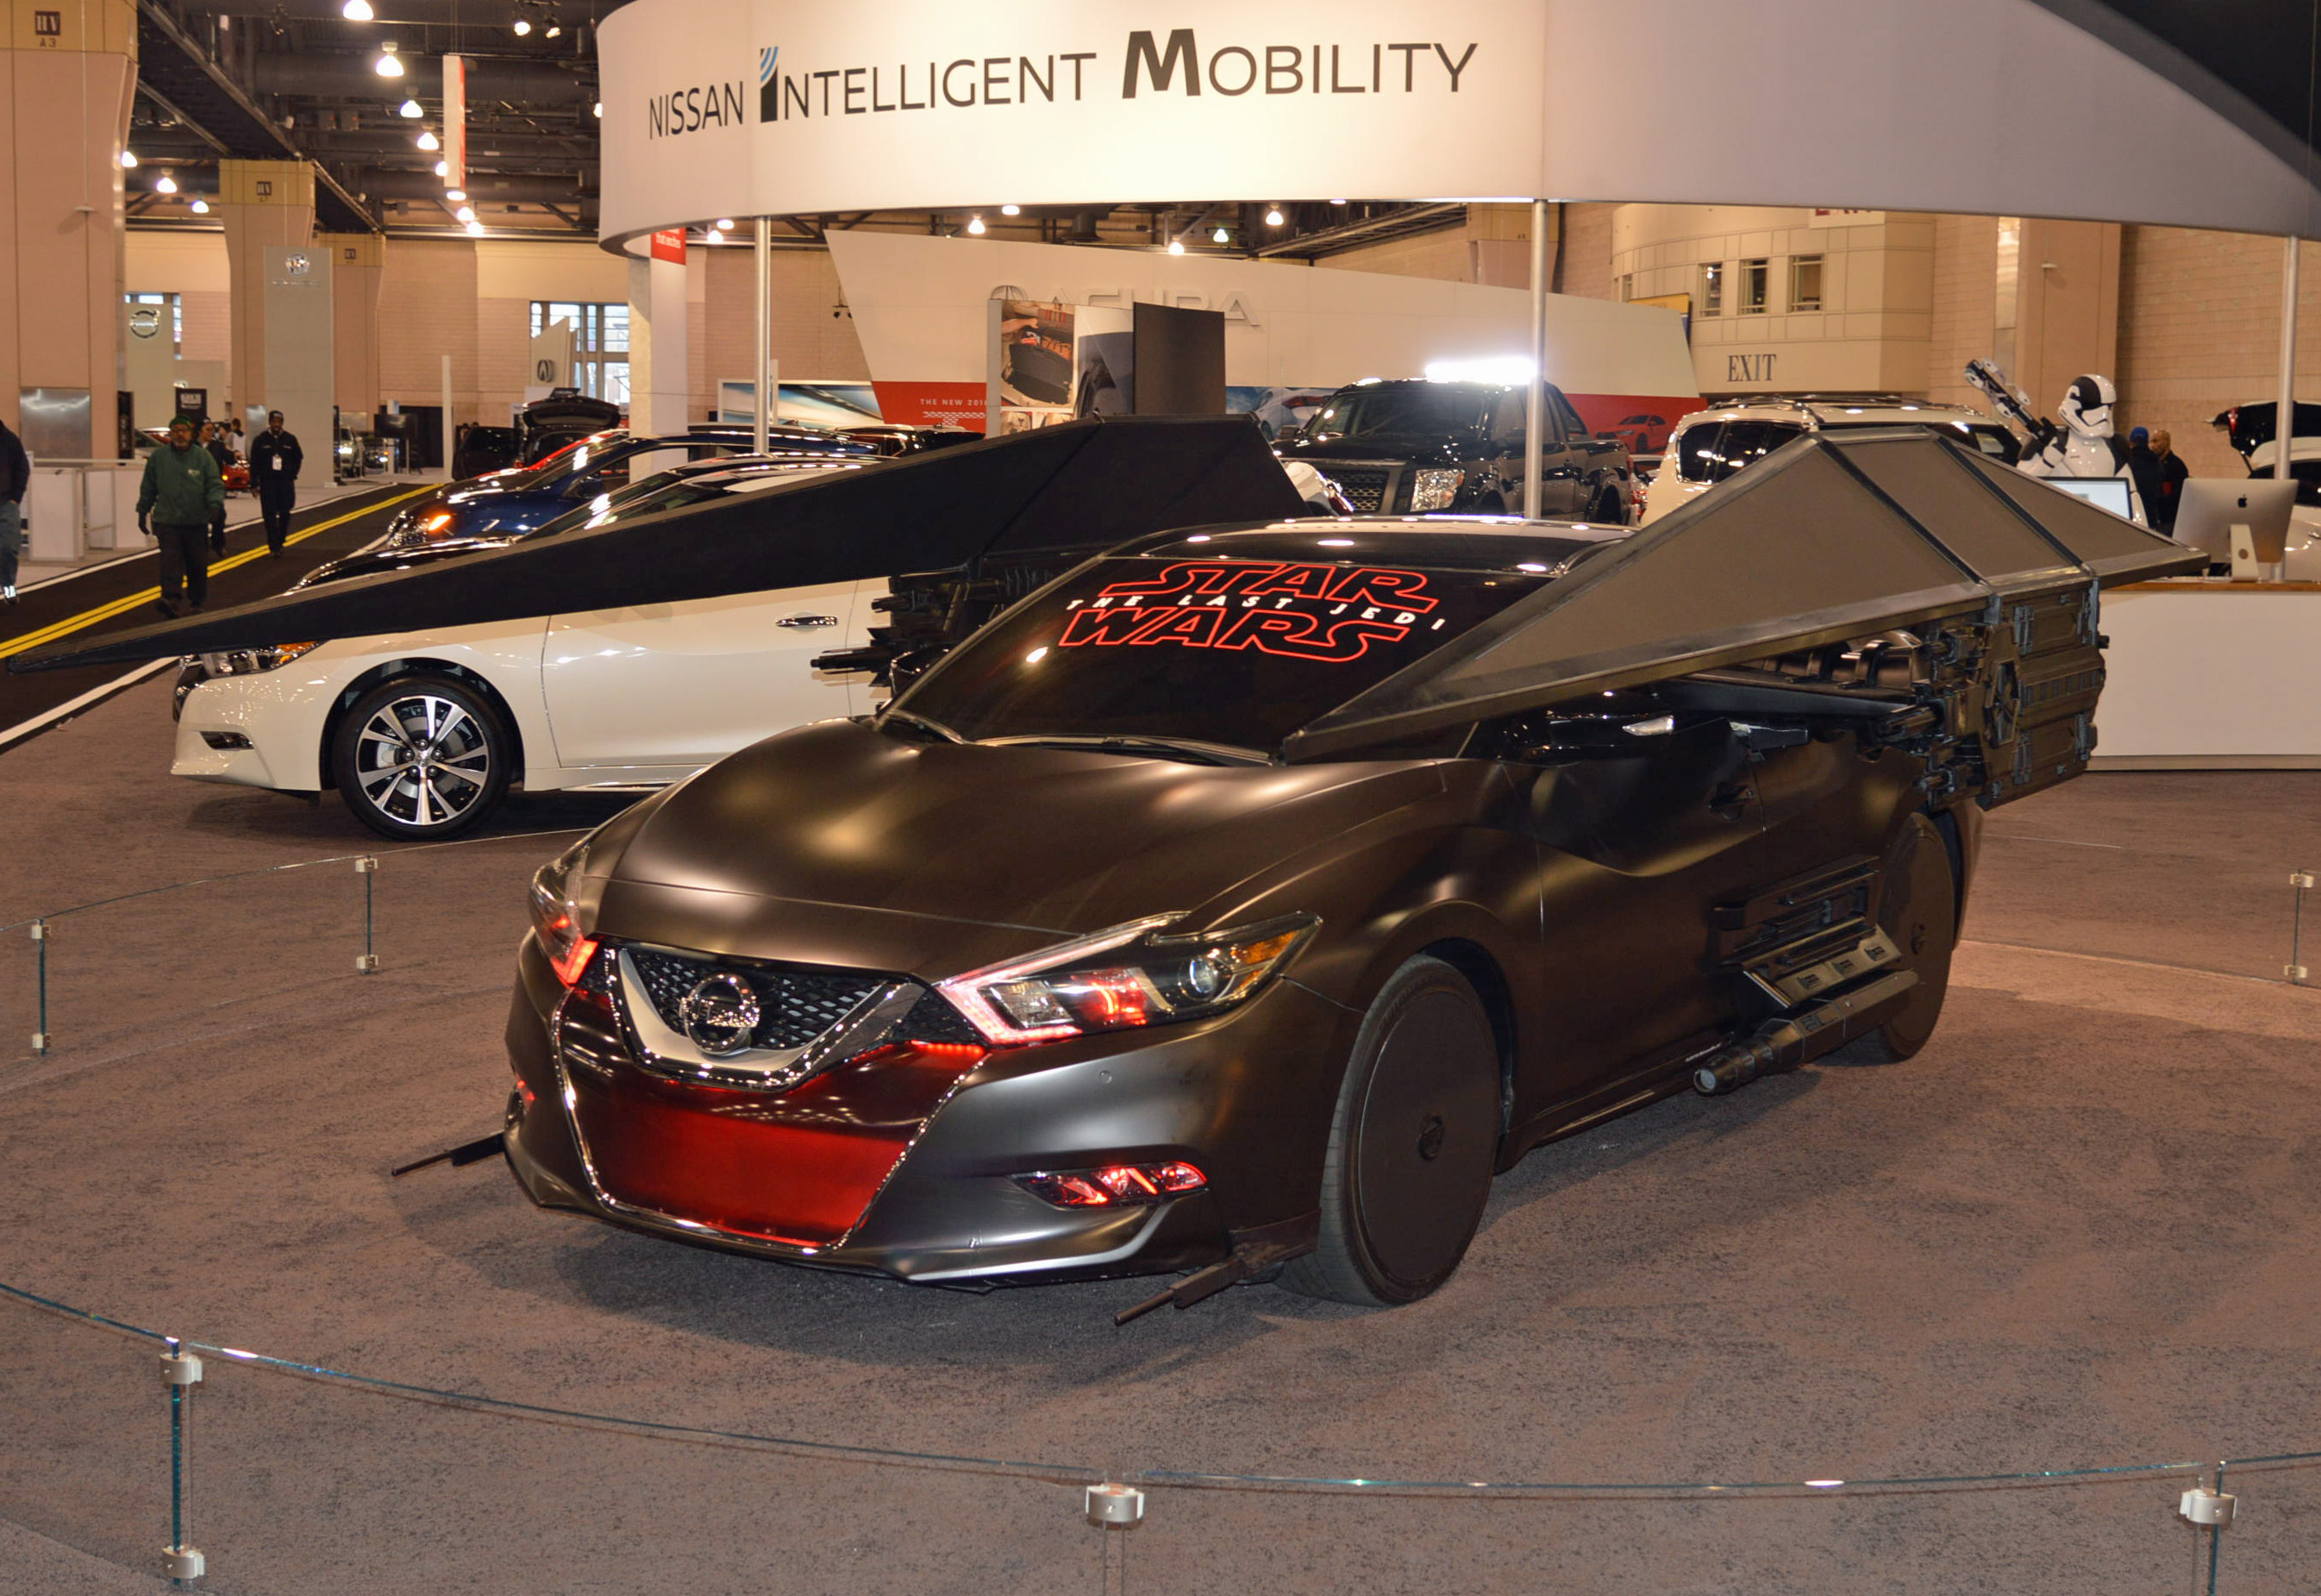 Philly Auto Show Roars Back Into Town With More Than 700 Vehicles